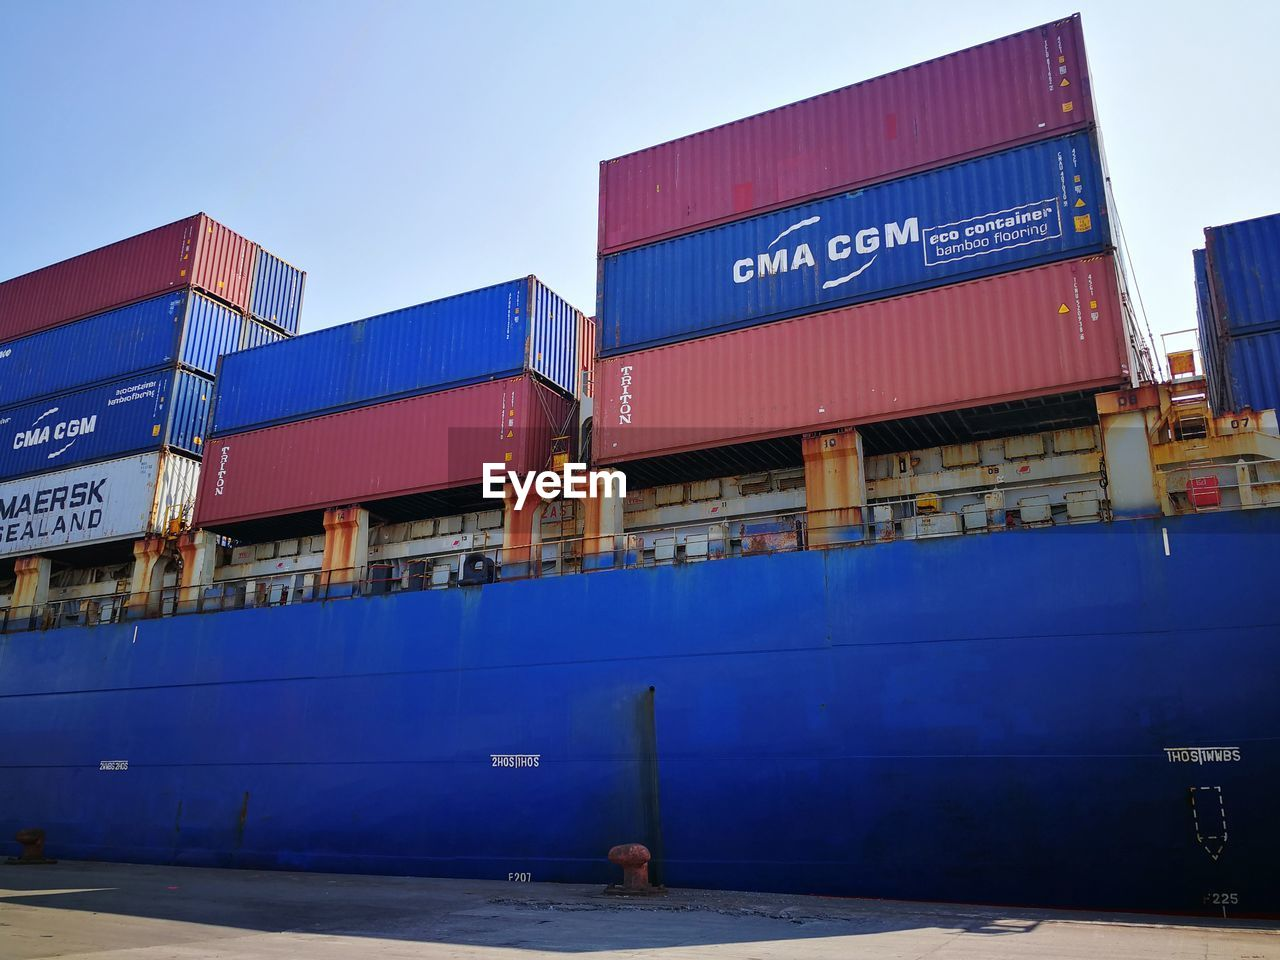 sky, blue, architecture, text, transportation, freight transportation, nature, cargo container, built structure, pier, no people, building exterior, business, day, industry, western script, outdoors, commercial dock, communication, clear sky